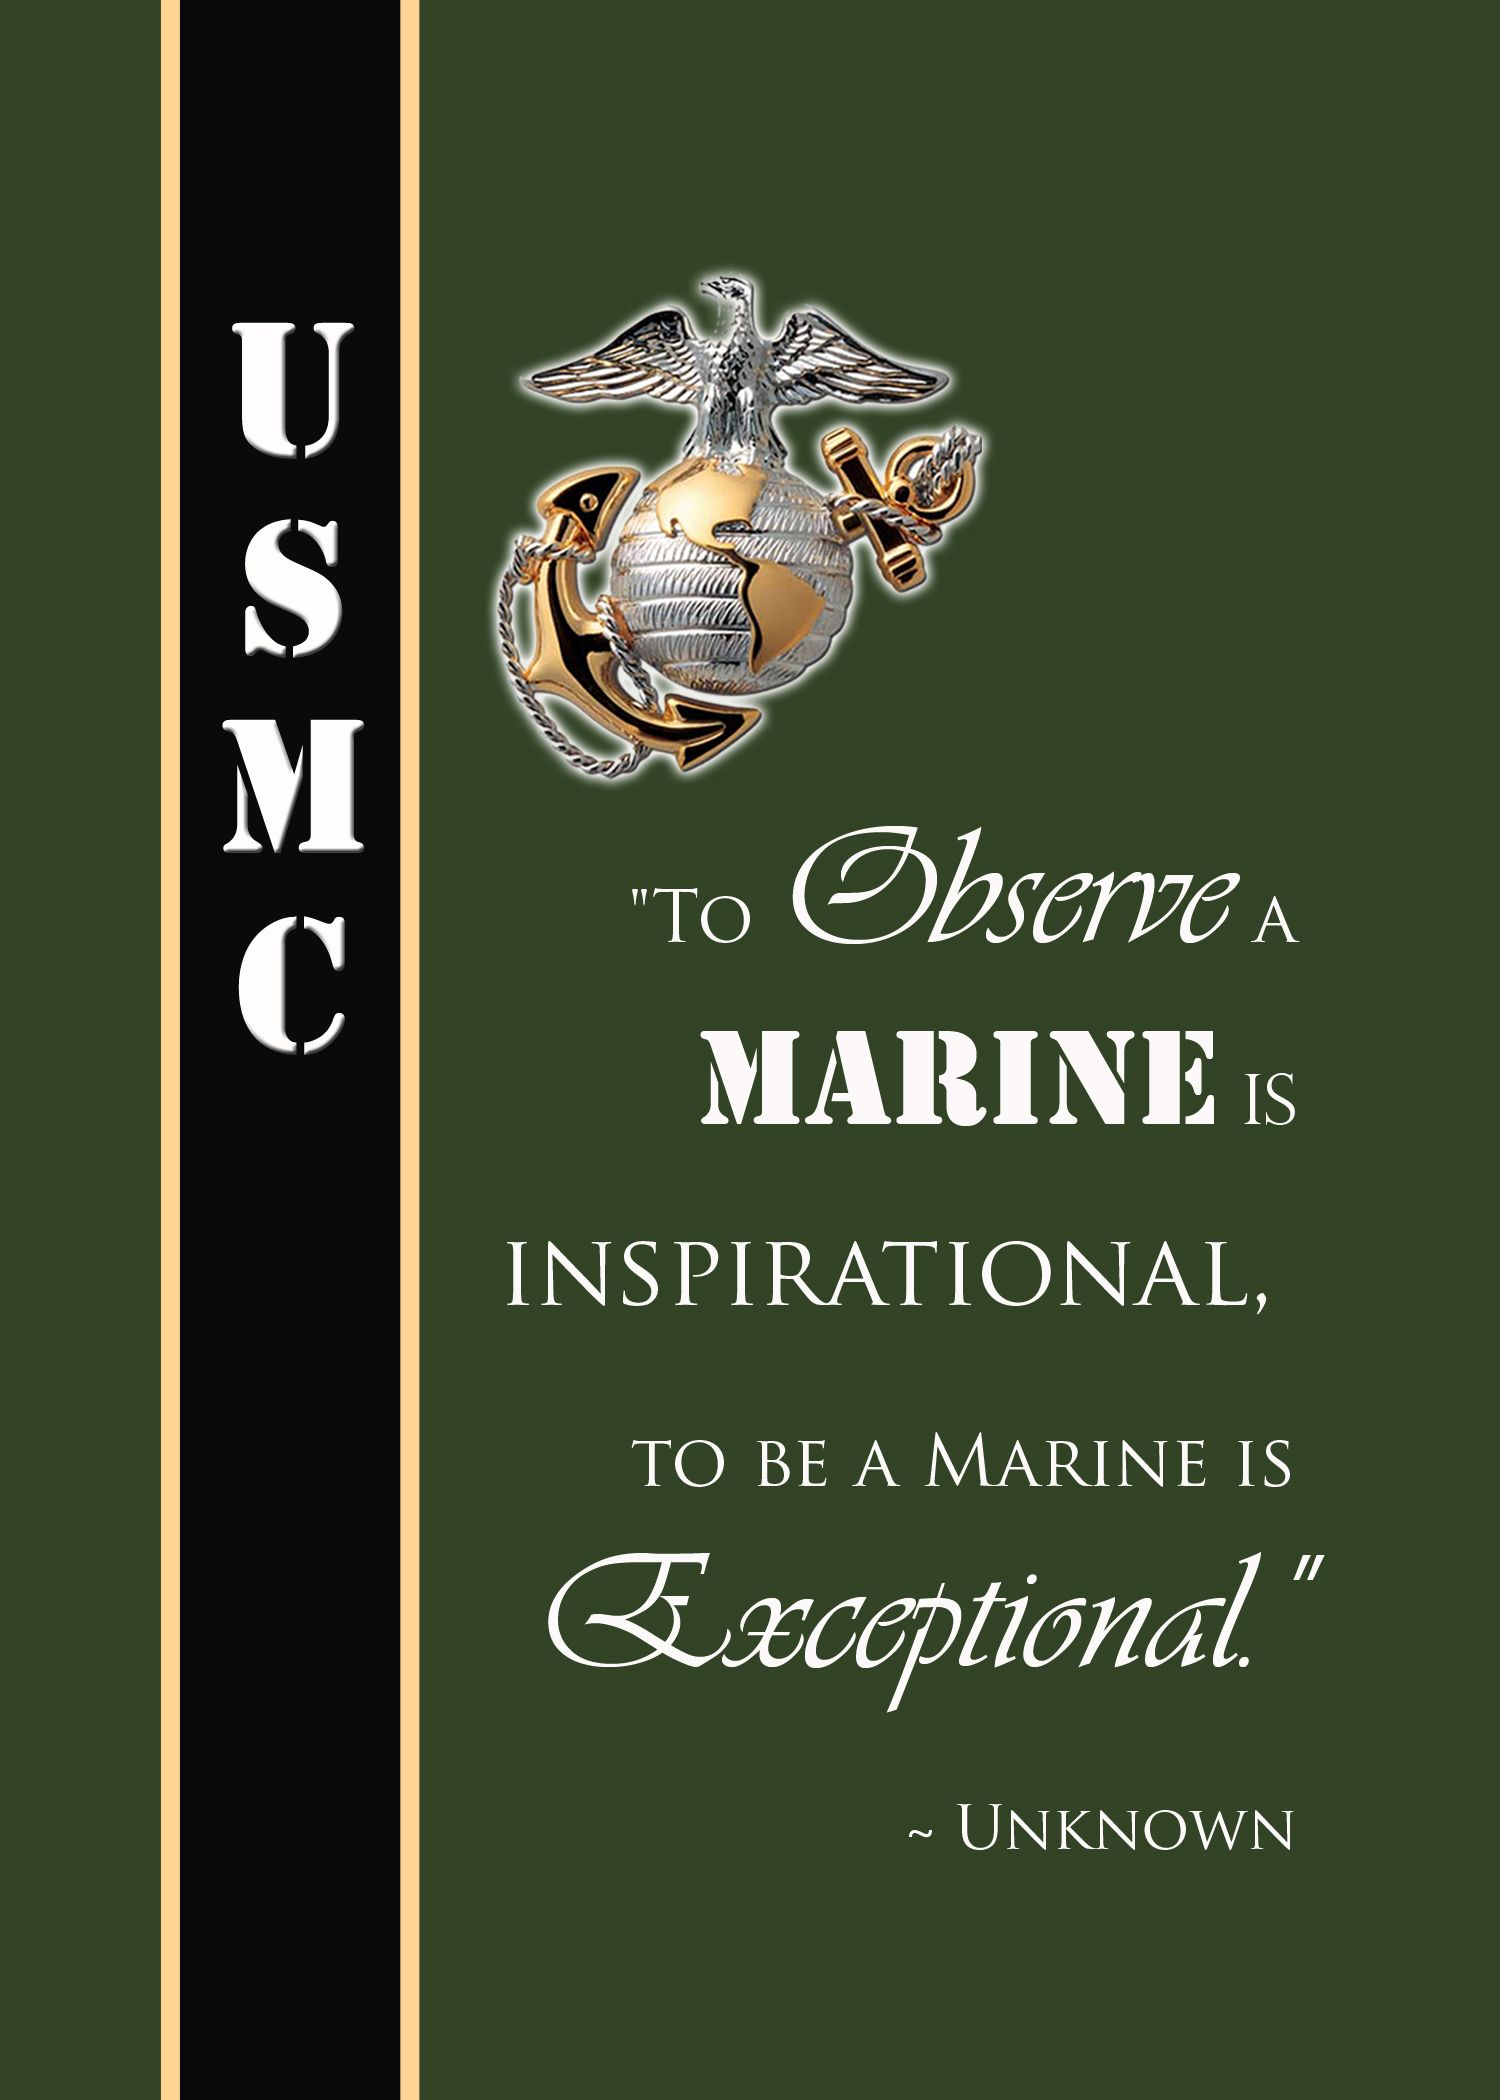 Famous Marine Corps Quotes Classy Famous Marine Quoteto Observe A Marine Is Inspirational To Be A